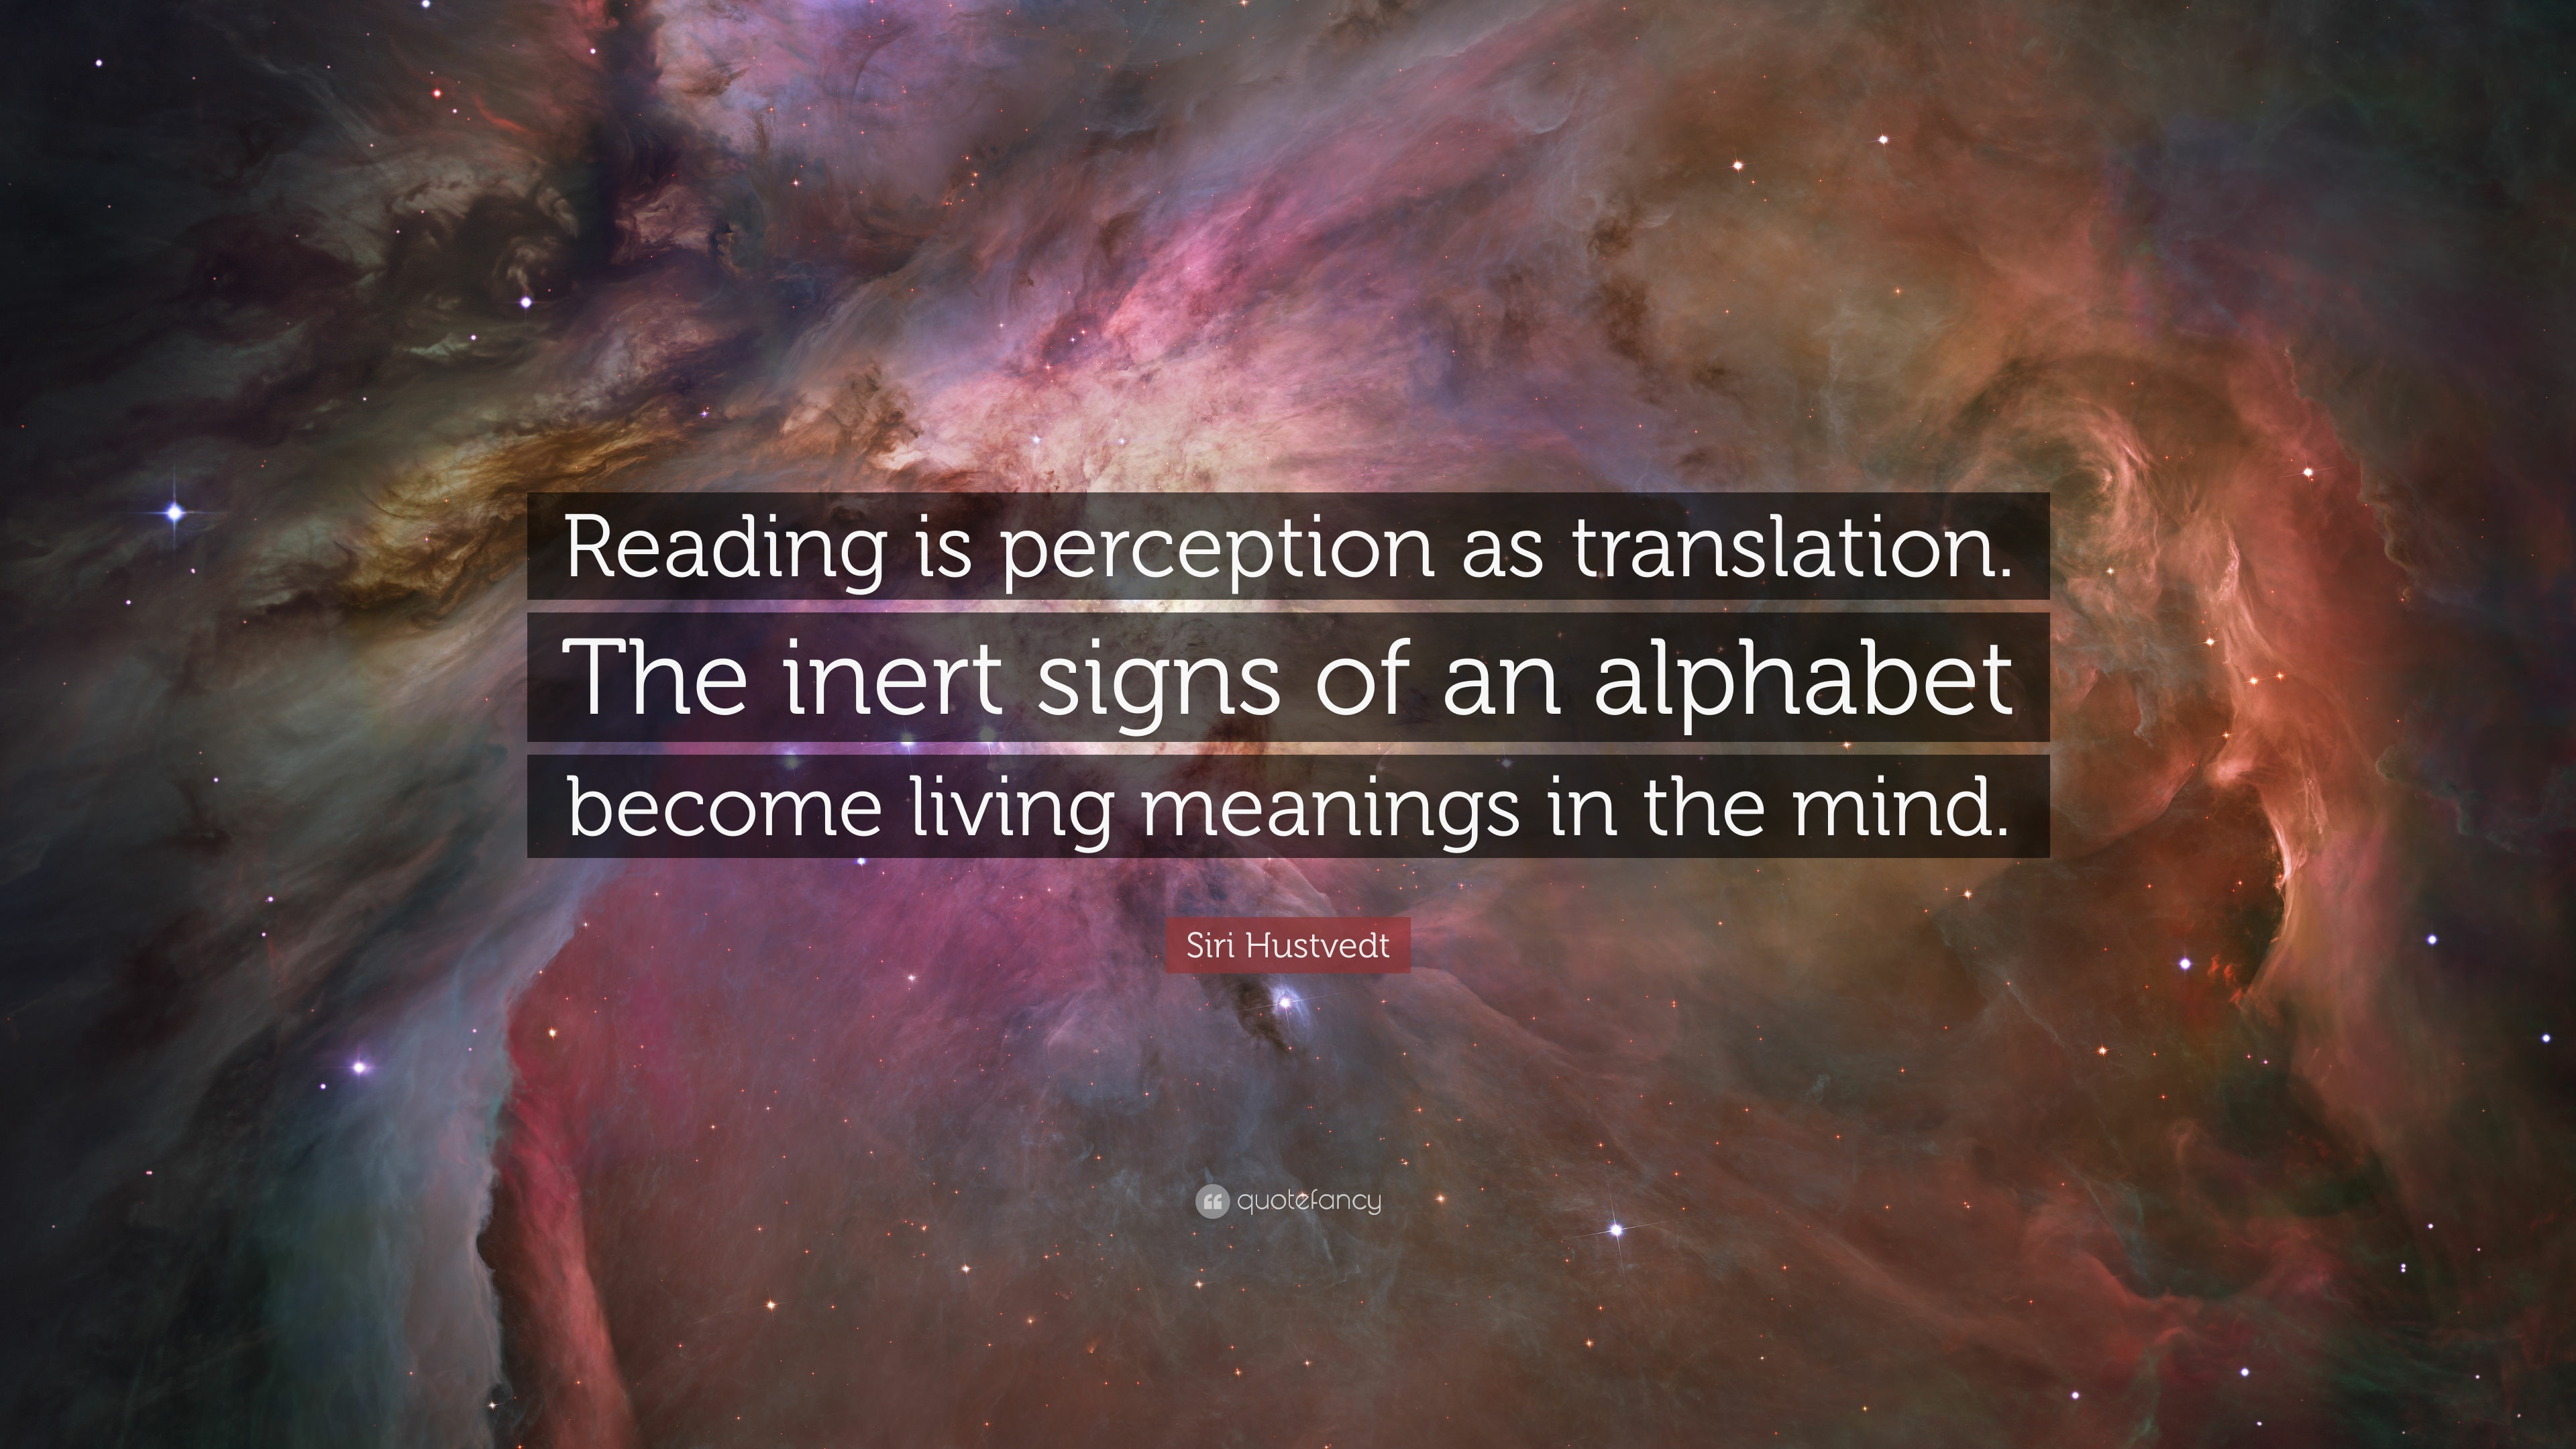 Meaning is in the mind of